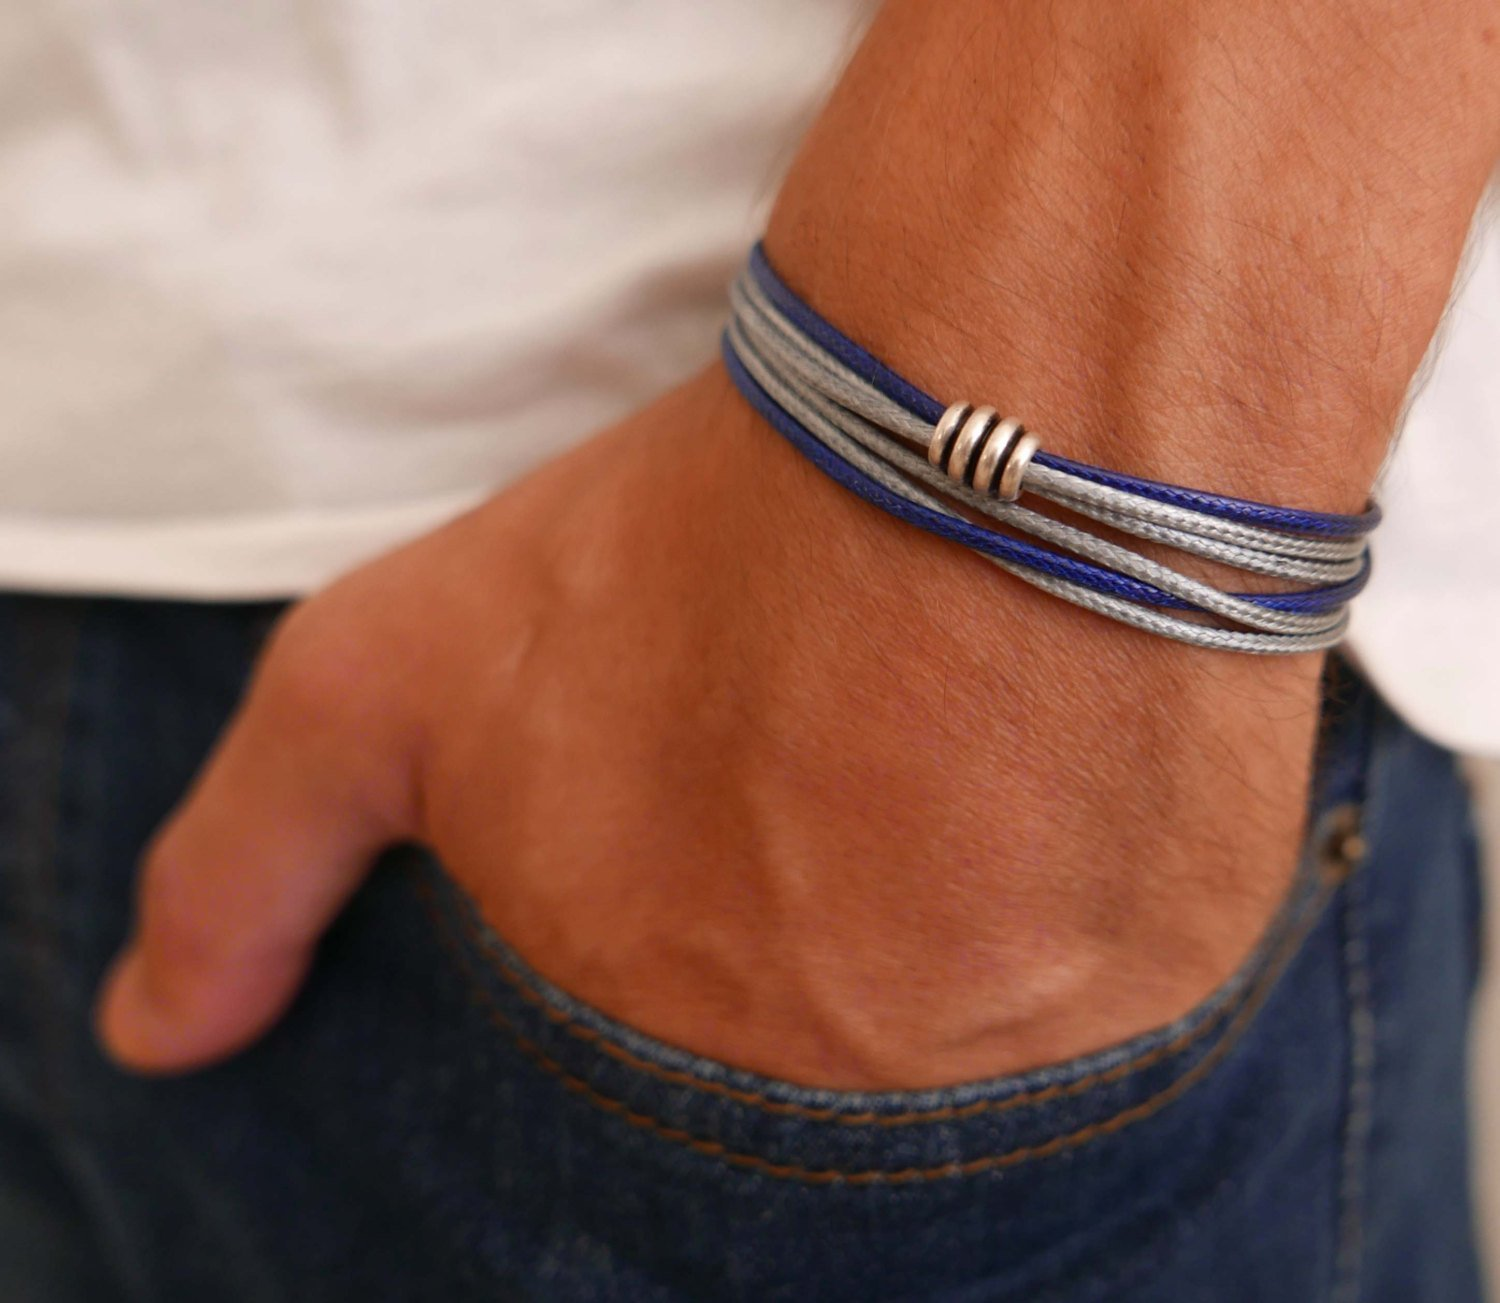 Handmade Wrap Gray And Blue Fabric Bracelet For Men Set With Silver Plated Bead By Galis Jewelry - Wrap Bracelet For Men - Beaded Bracelet For Men - Jewelry For Men